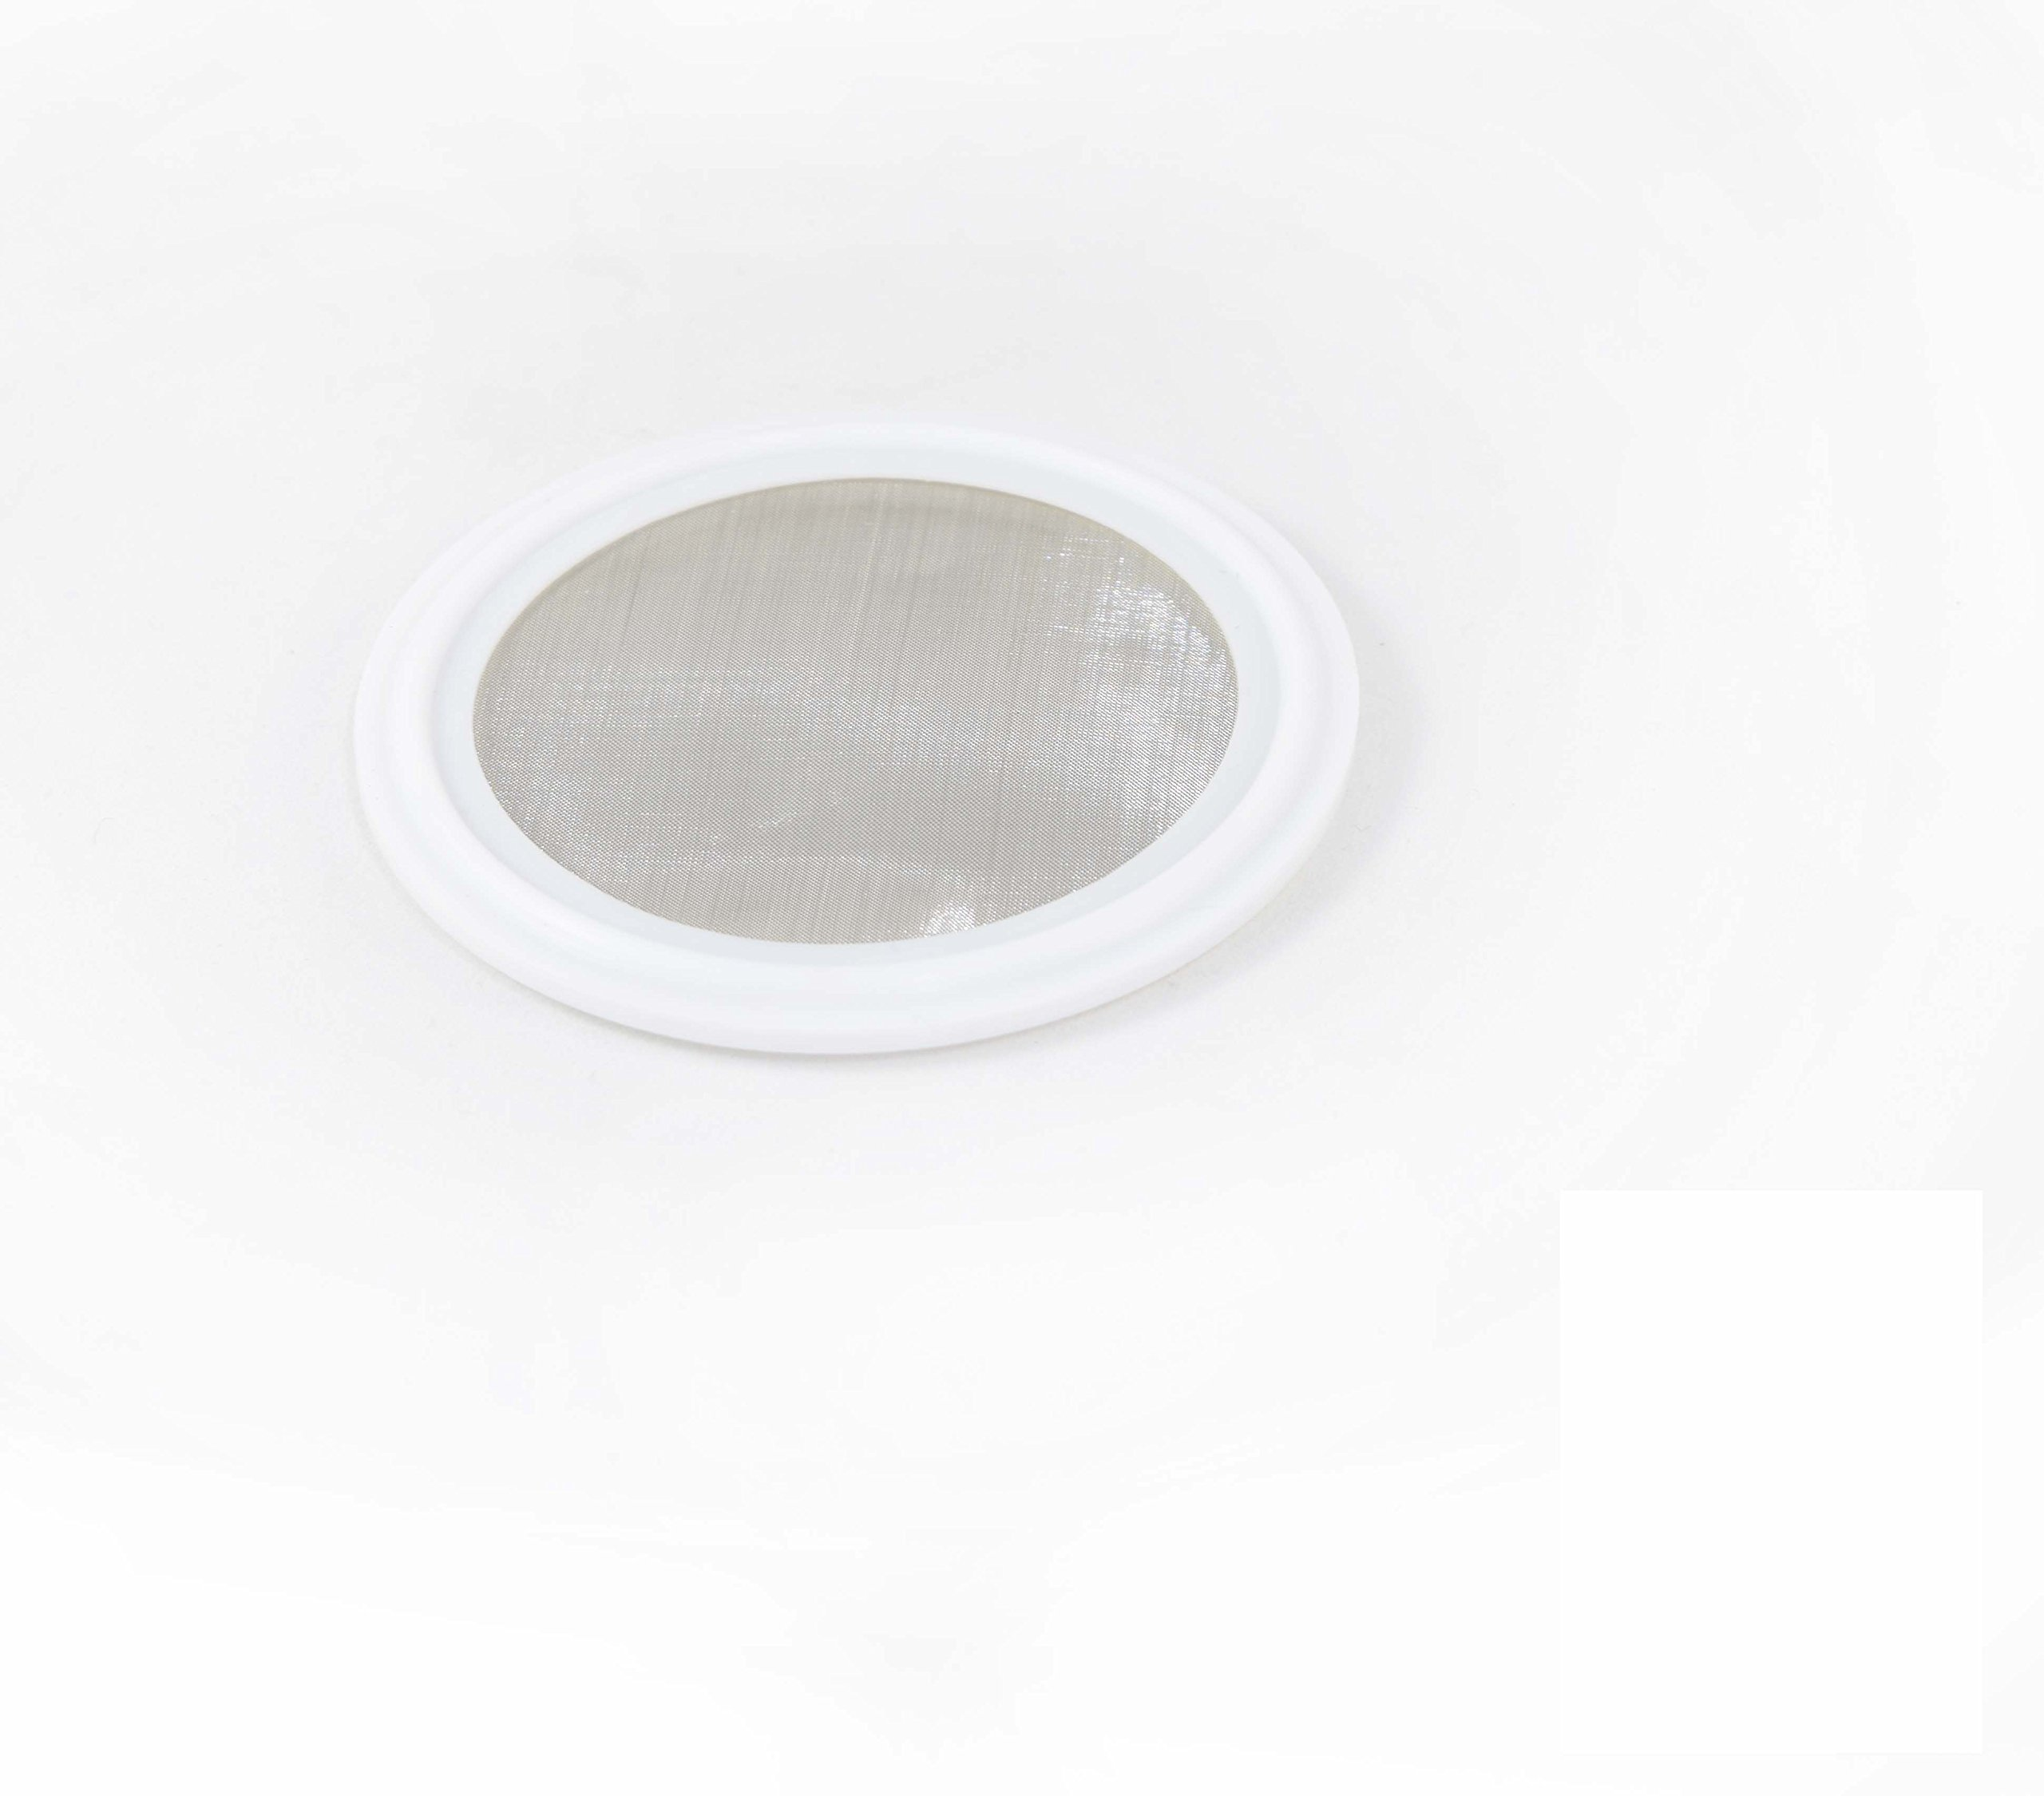 1.5'' Tri Clamp (Teflon) PTFE Screen Gasket 316 (20Uf Micron) Screen Stainless Steel Pharmaceutical Grade Filter Mesh. PTFE Inverted Envelope With Floating Stainless Mesh! With FDA Certification (1.5'')